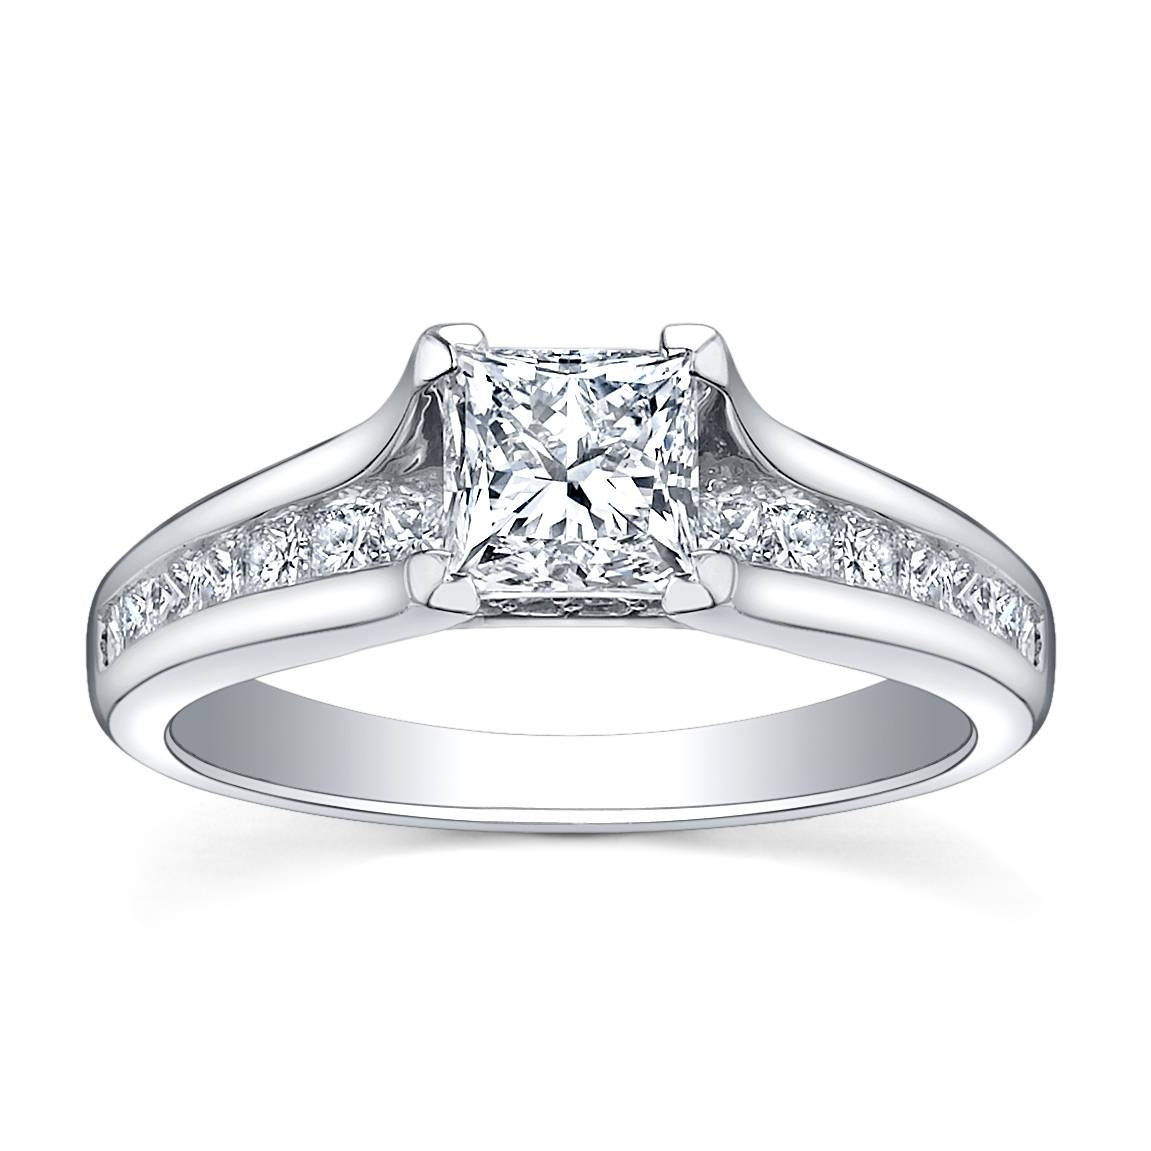 Fallers Wedding Jewellery 18K White Gold Diamond Engagement Ring In White Gold And Diamond Engagement Rings (Gallery 2 of 15)